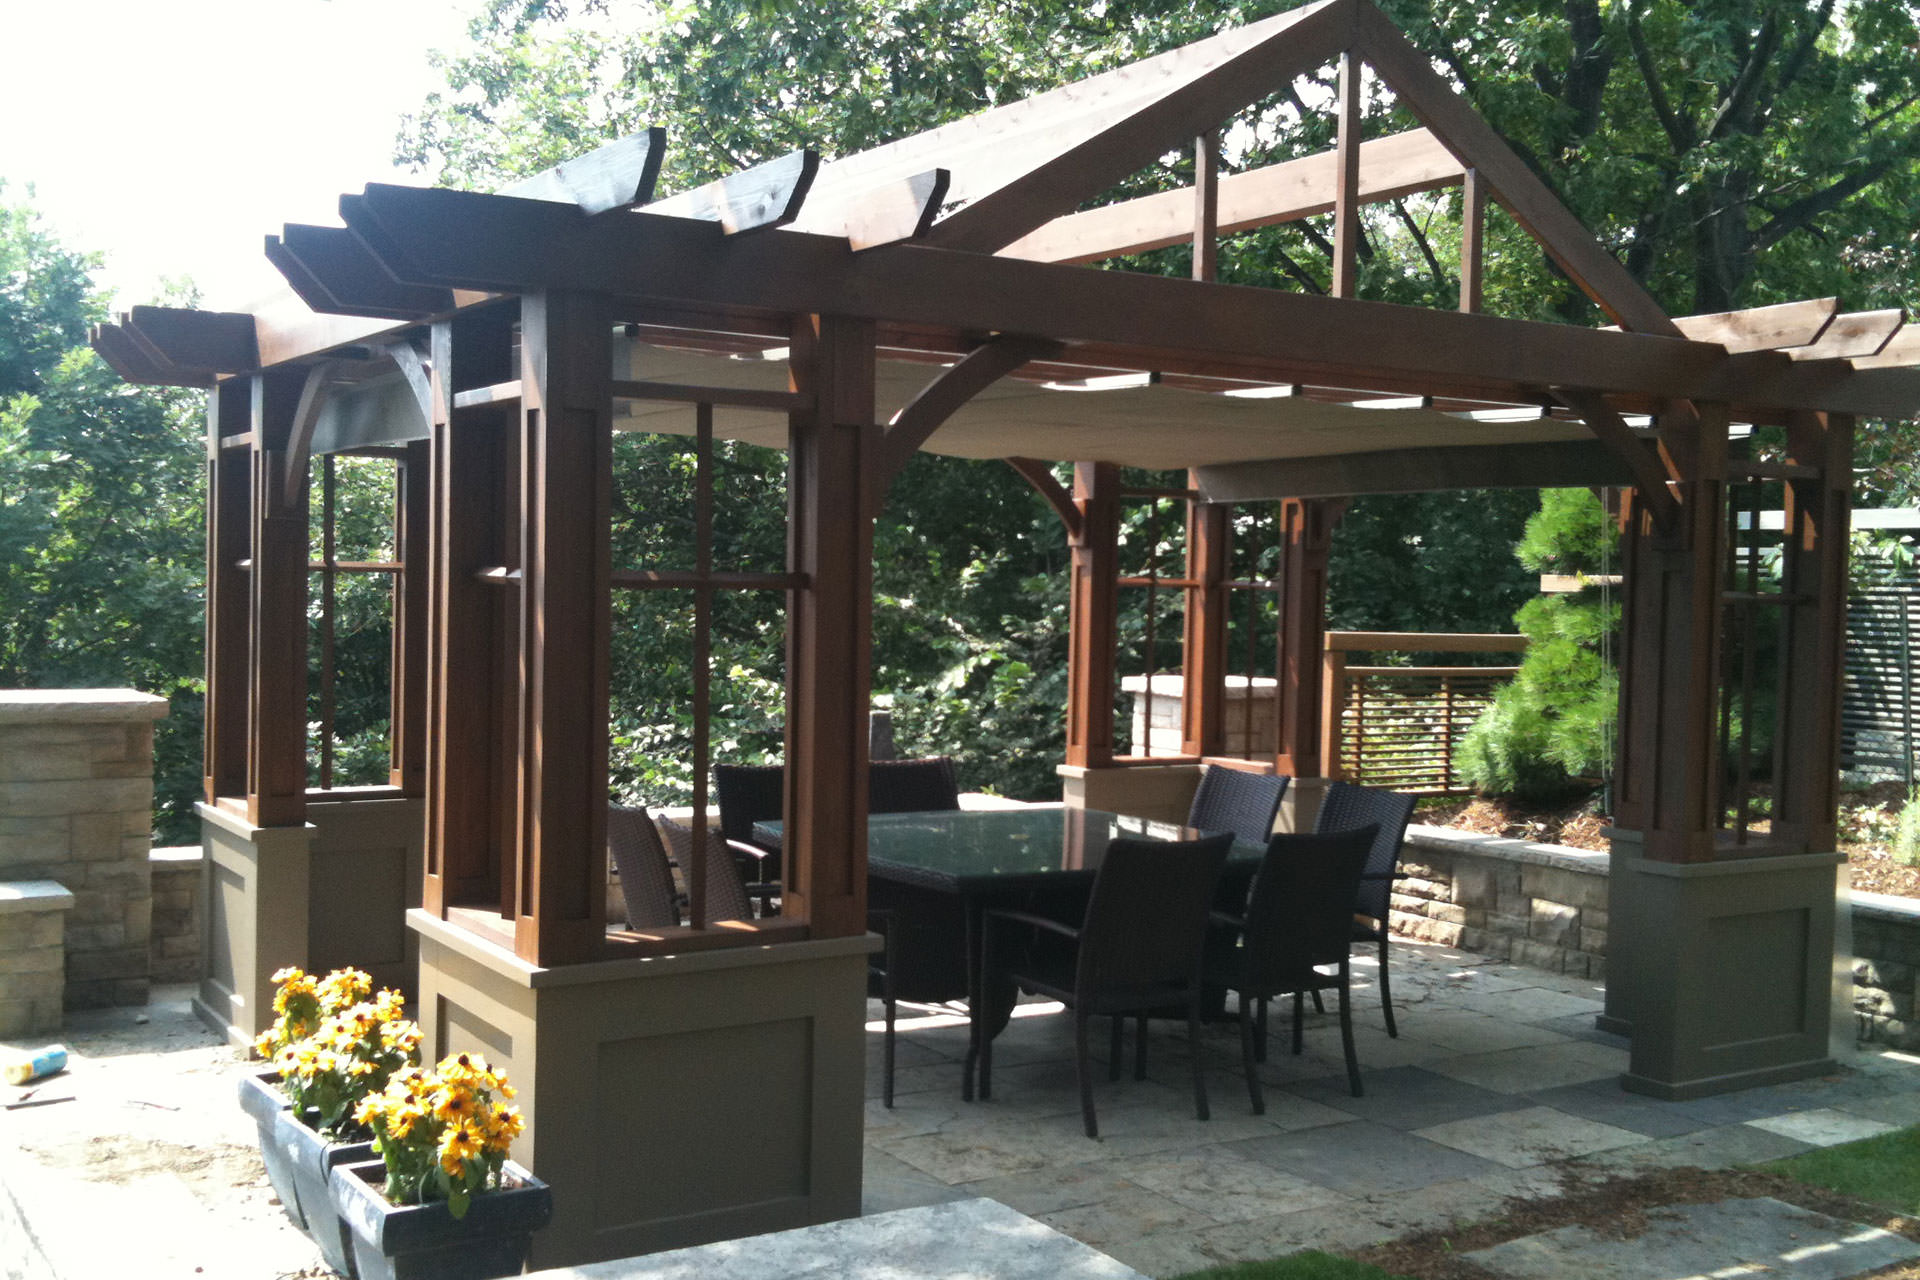 Pergola Designs Build Plans Pergola Designs Images Wooden End To End Wood Joints